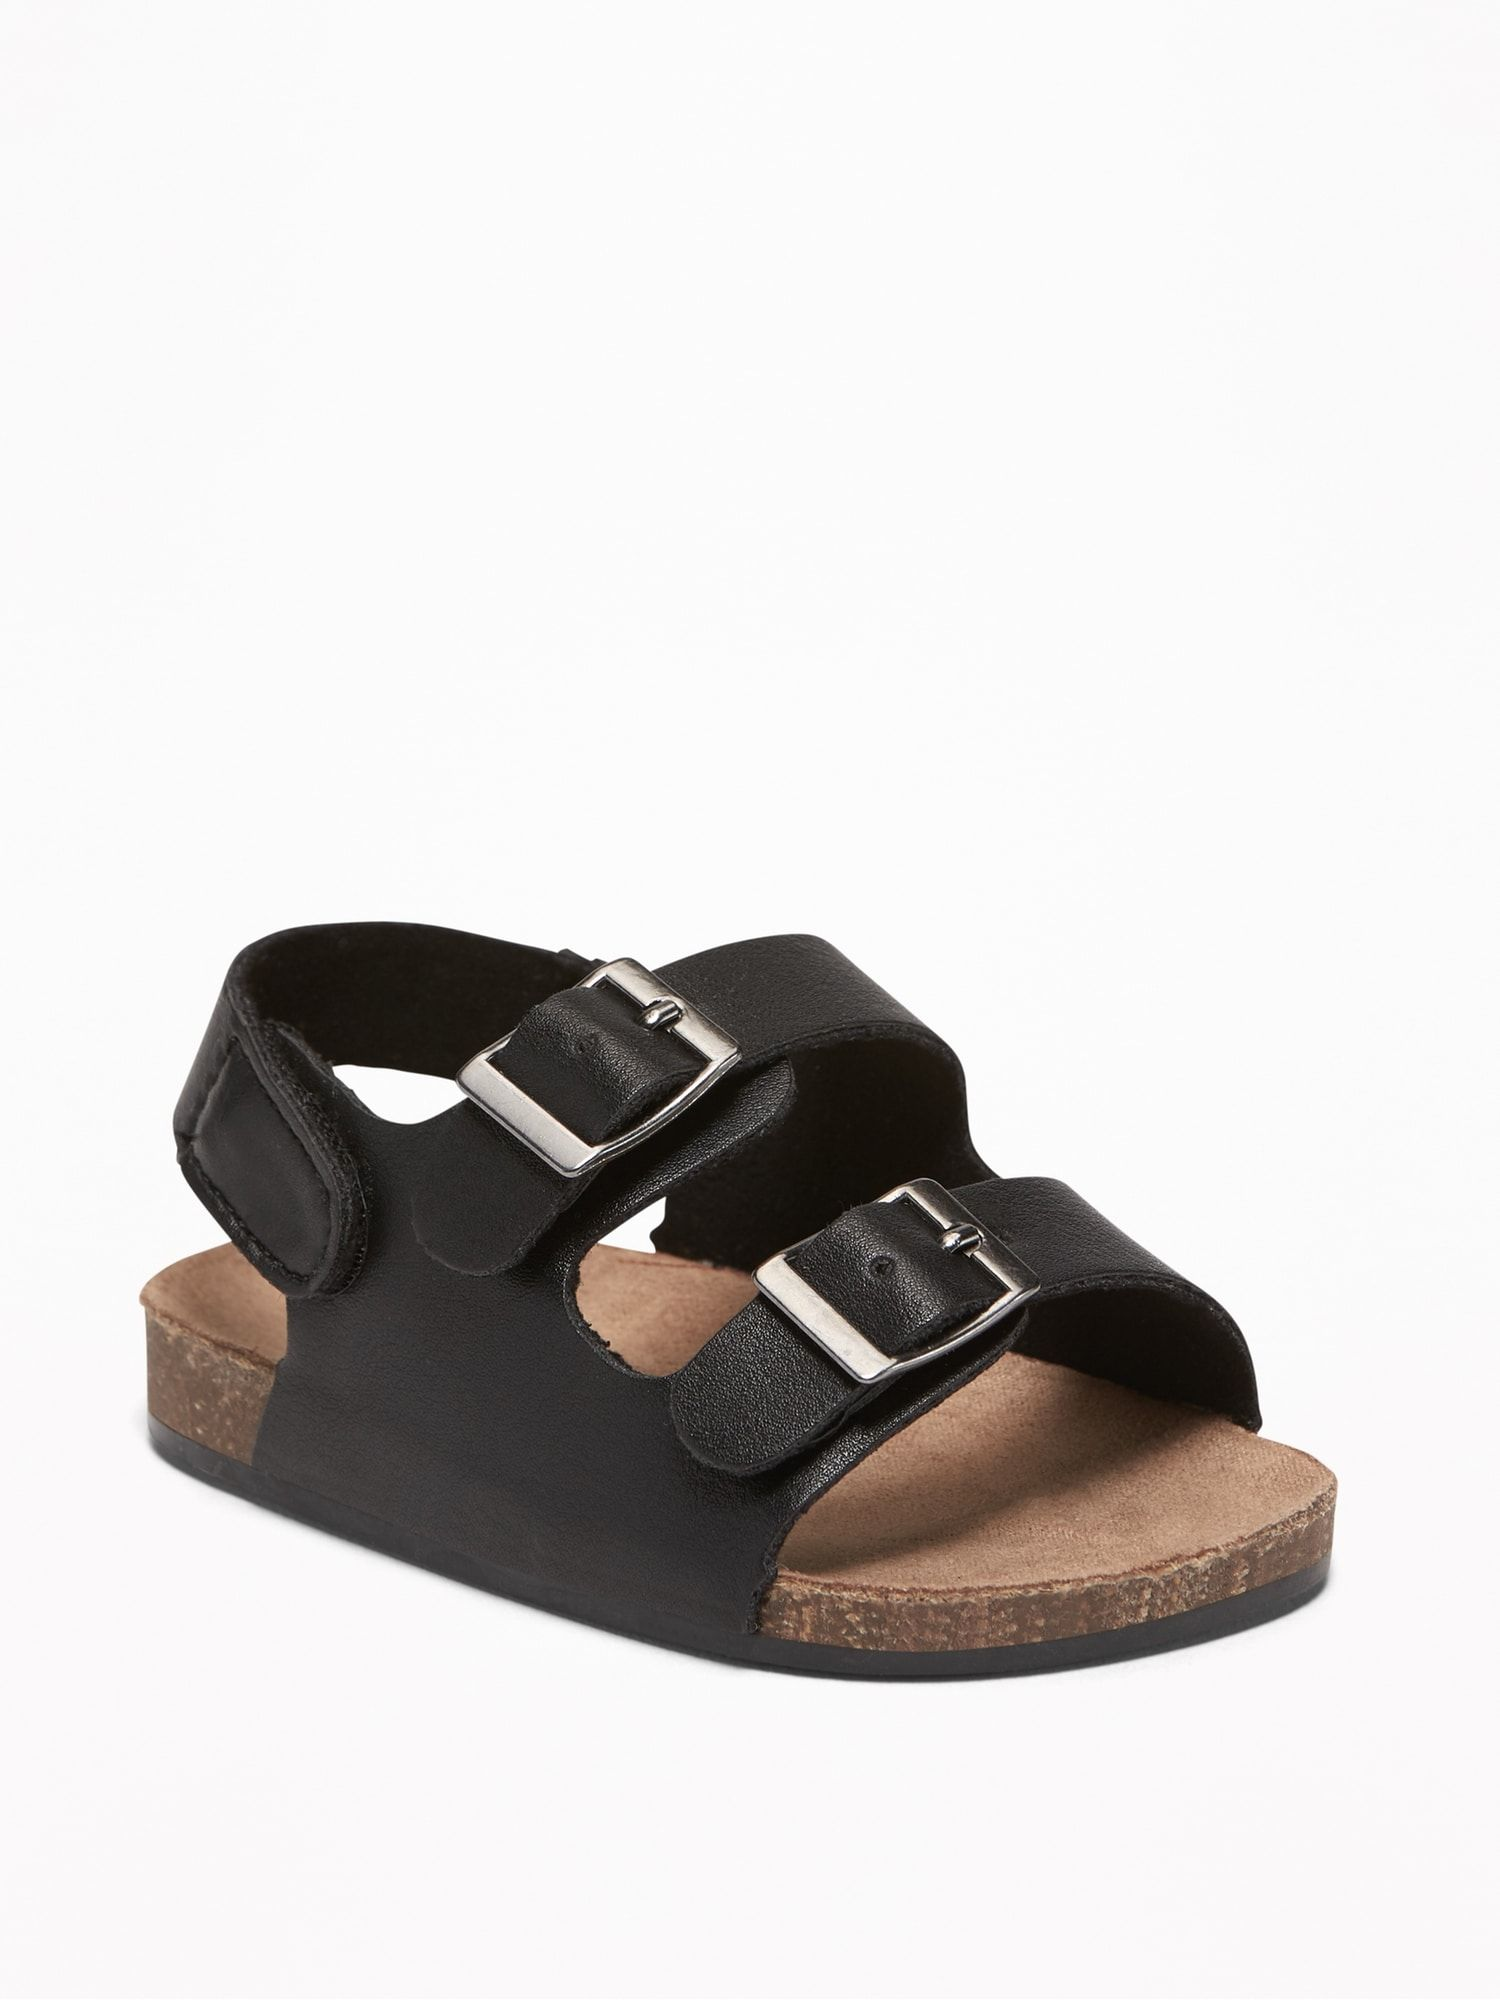 Faux-Leather Double-Buckle Sandals for